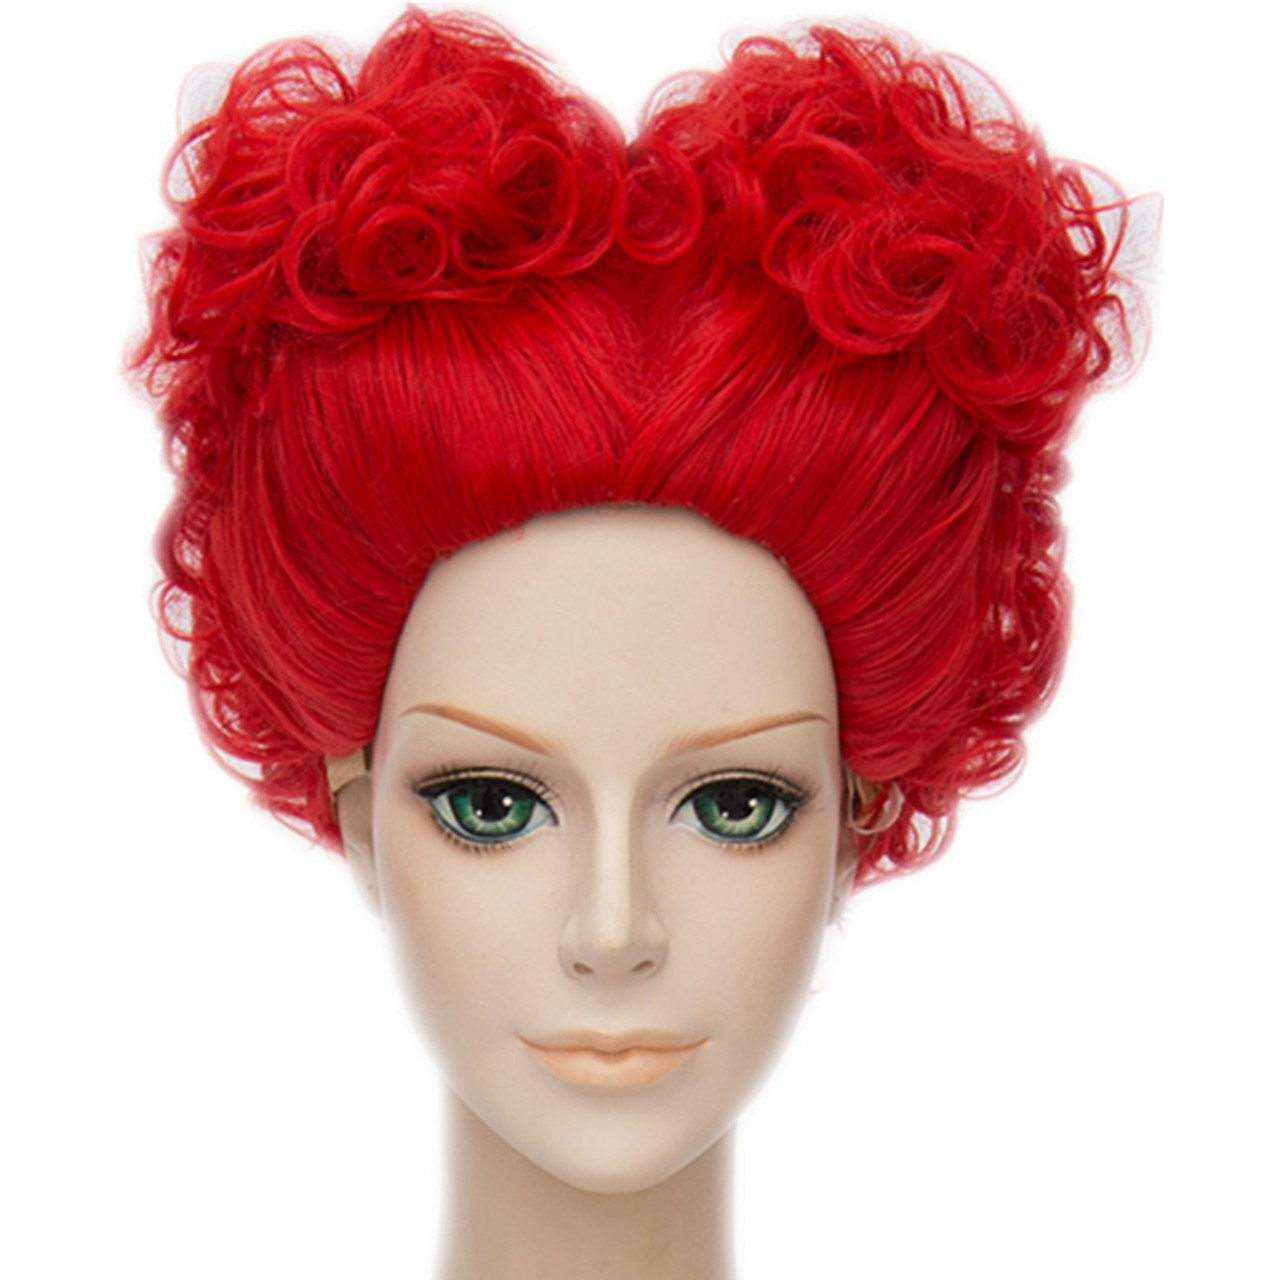 MSHUI Alice's Adventures in Wonderland Red Queen Anime Cosplay Short Curly Hair M-925CW04